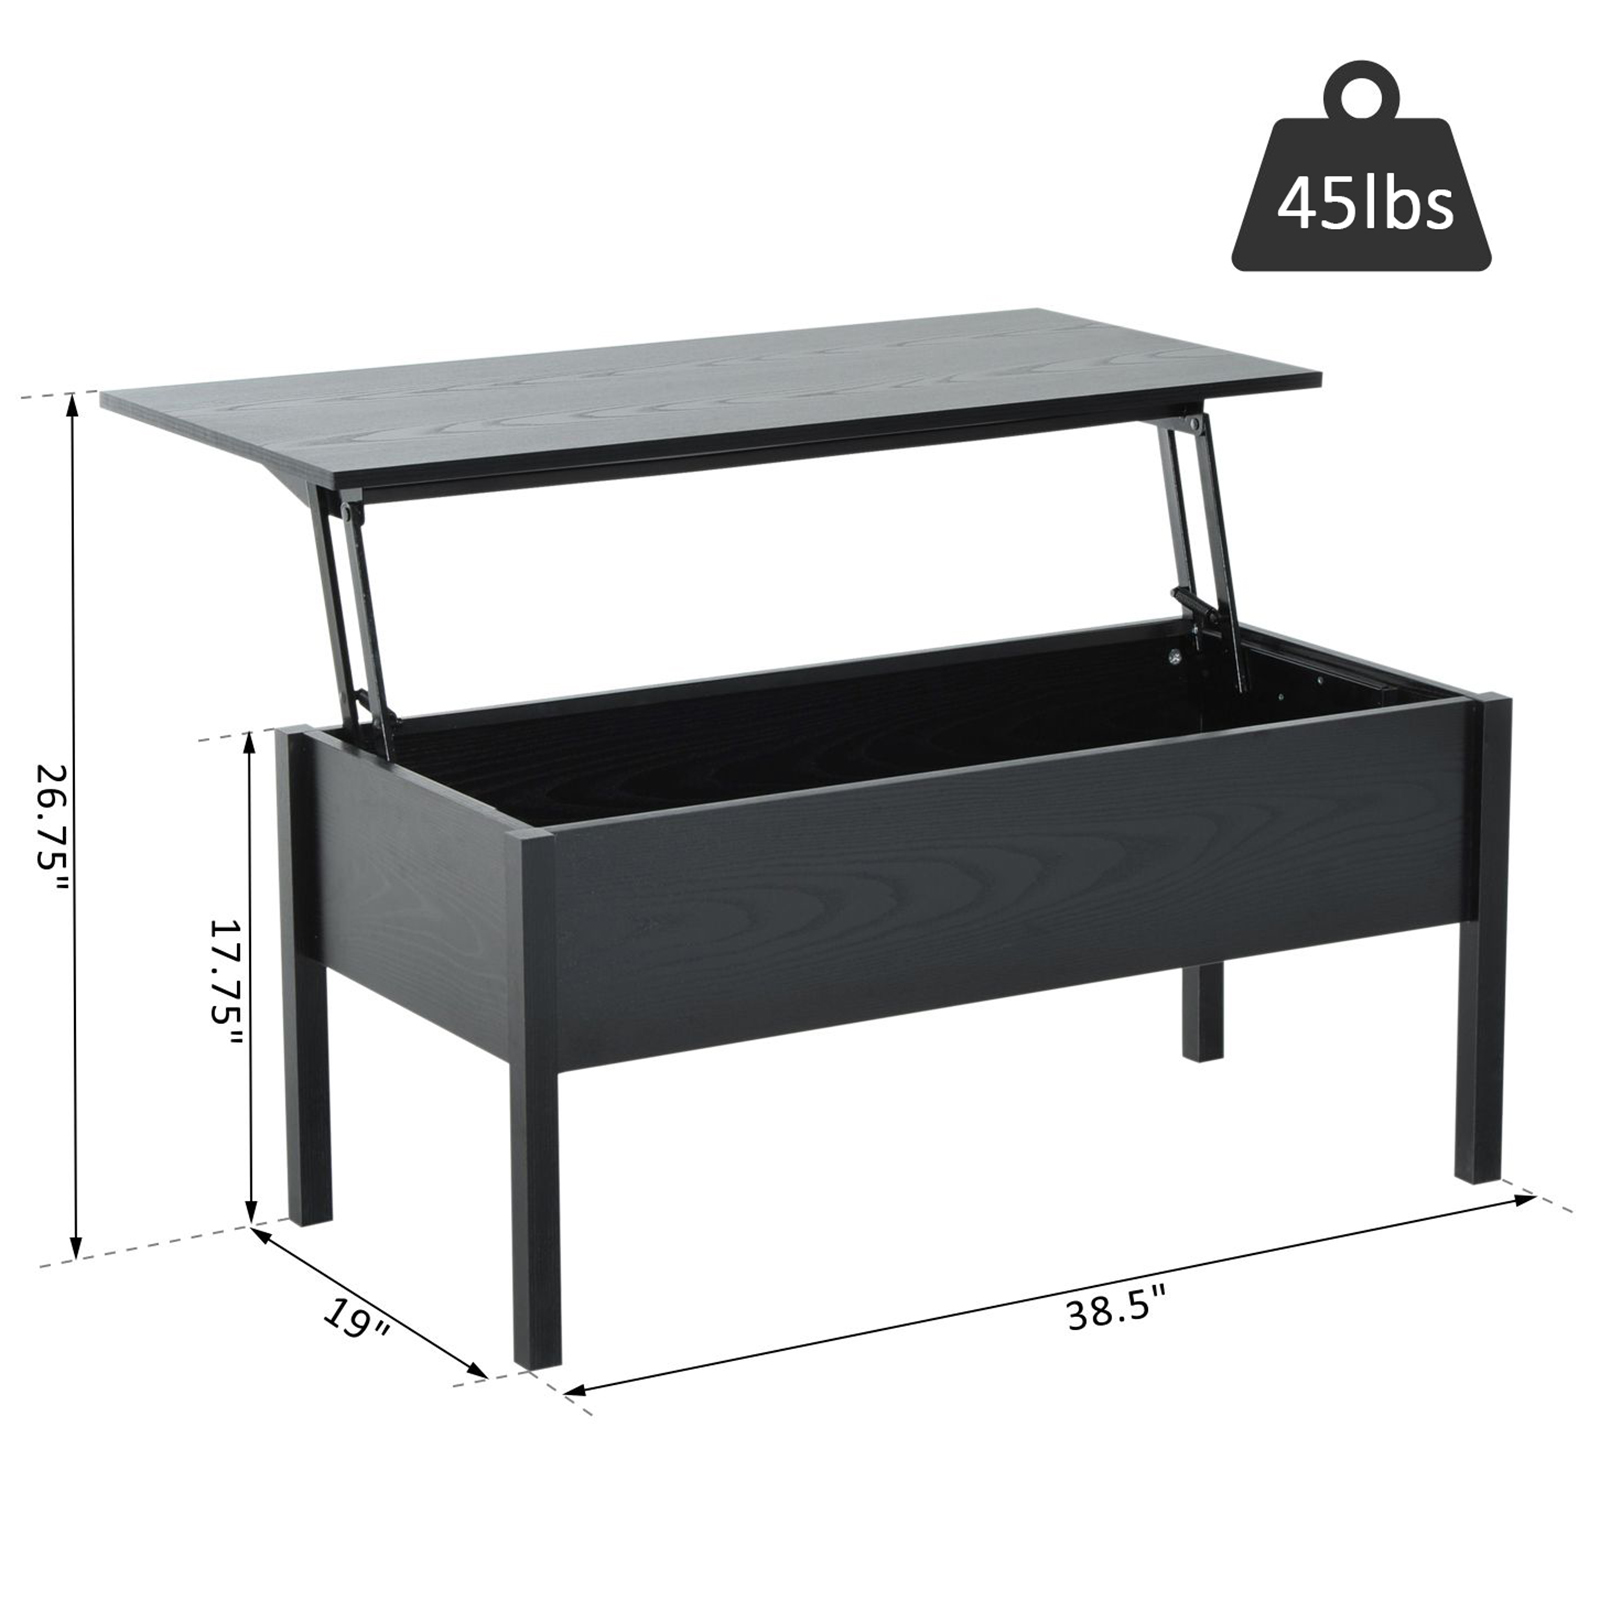 39-Modern-Lift-Top-Coffee-Table-Floating-Retractable-Lift-Top-Hidden-Storage thumbnail 3